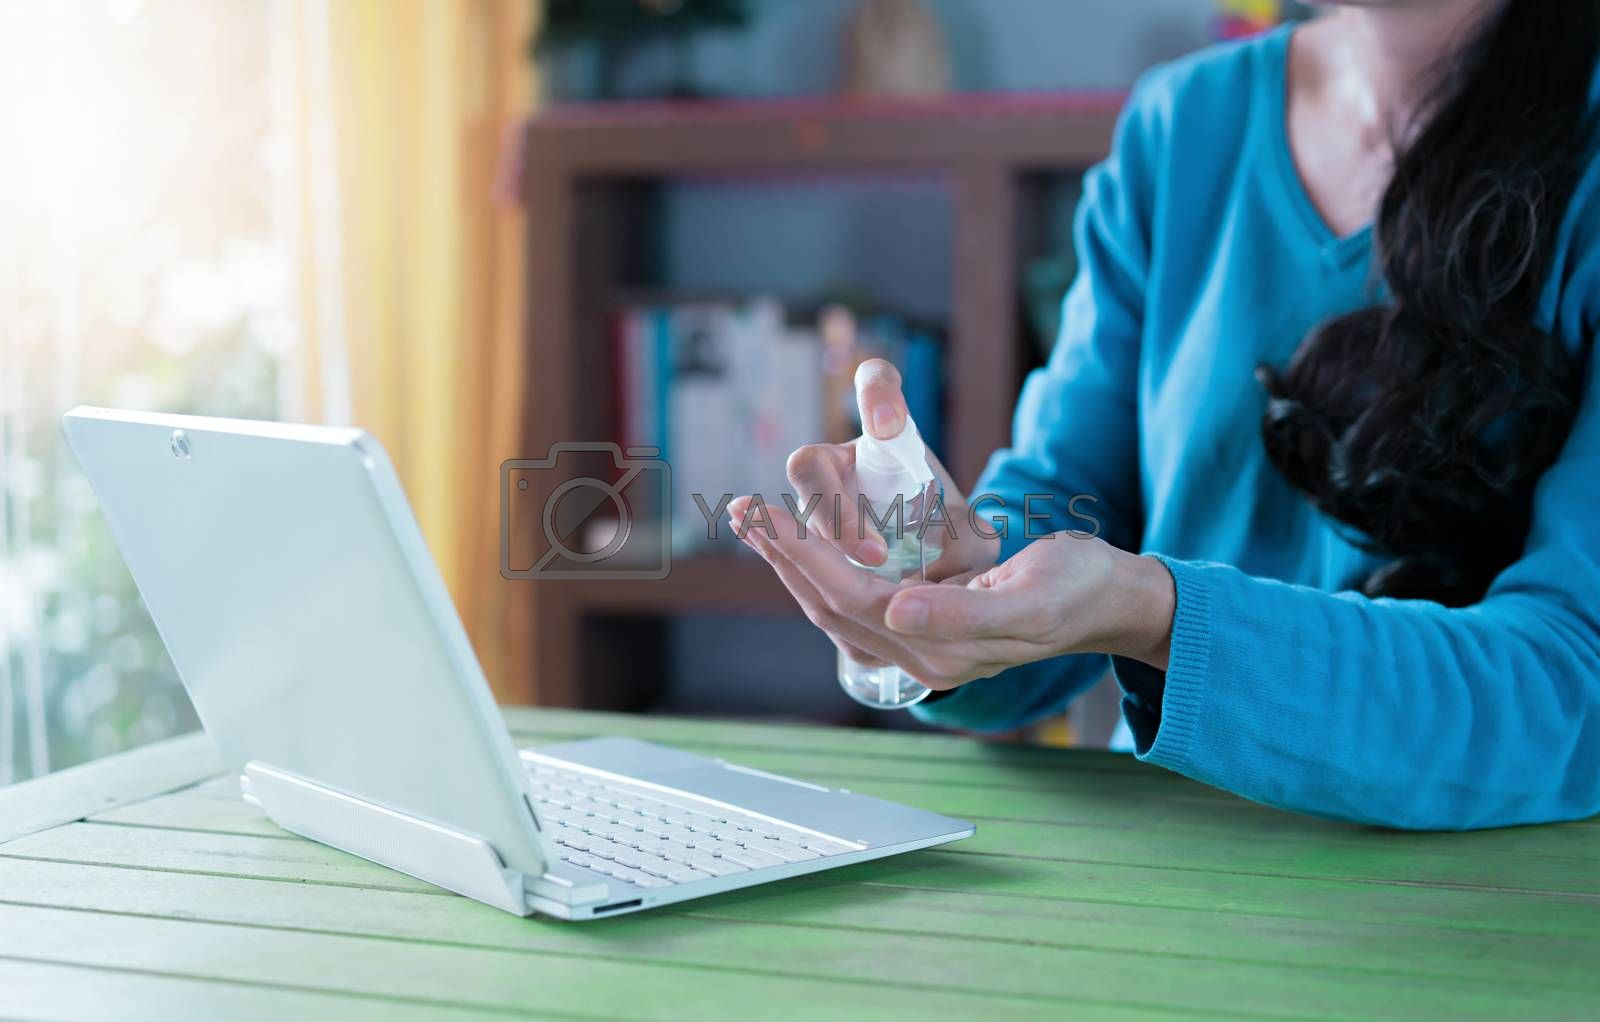 Woman working from home. Cleaning her hands with sanitizer gel.